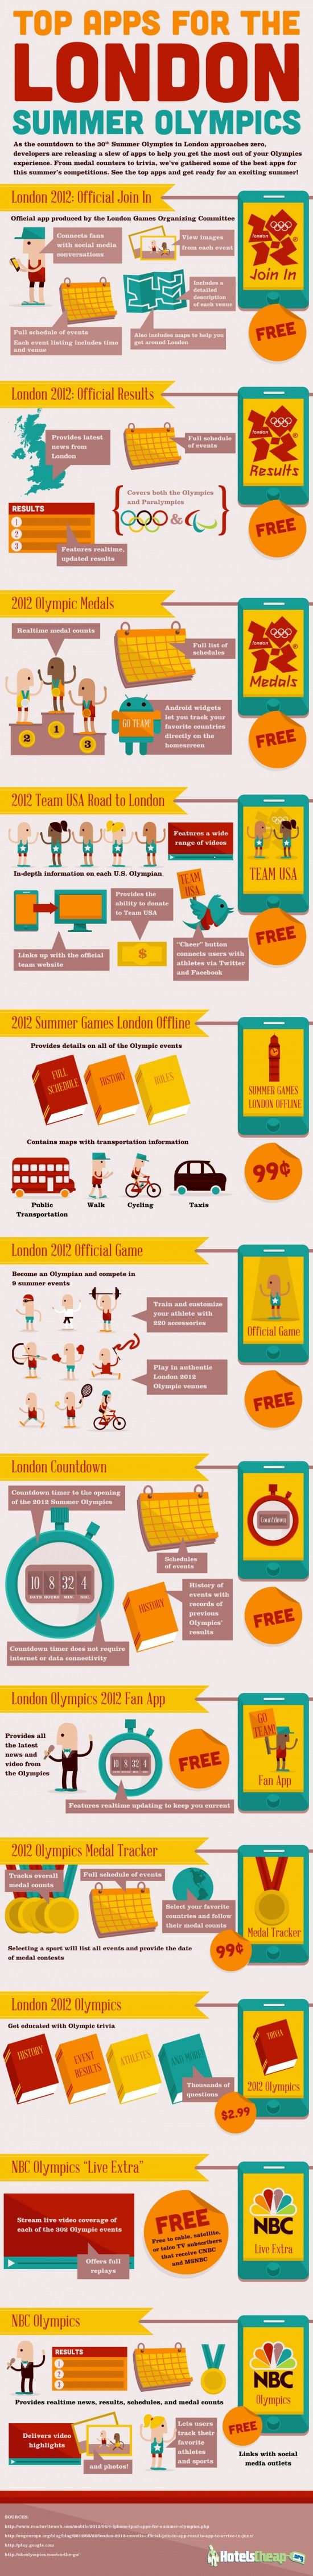 INFOGRAPHIC: TOP APPS FOR THE LONDON SUMMER OLYMPICS